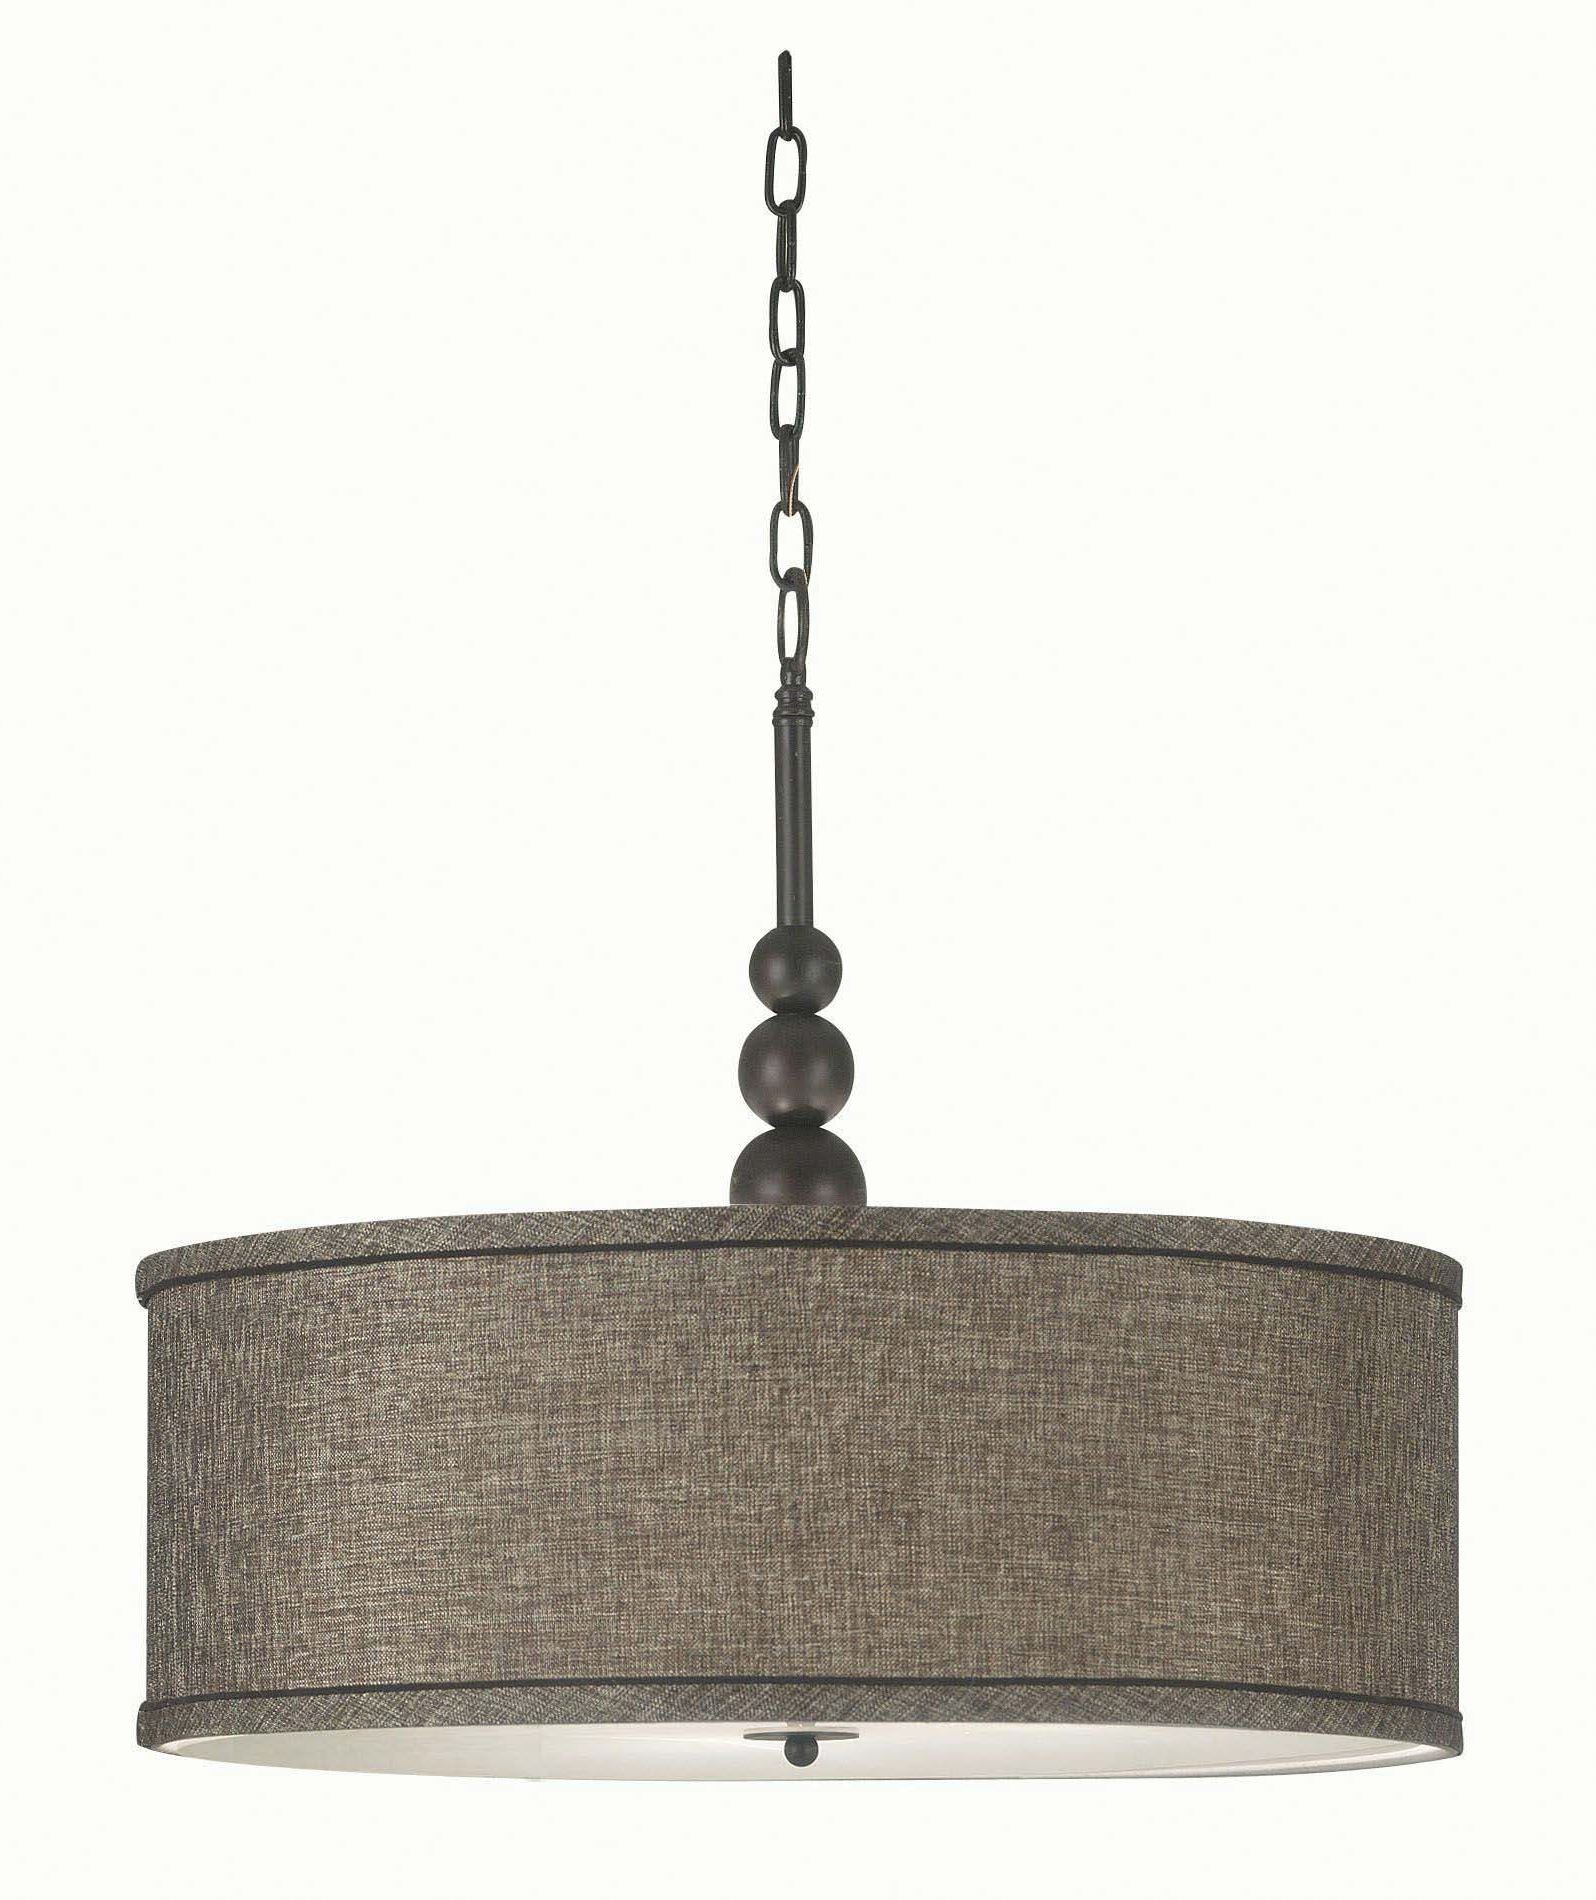 Oil Rubbed Bronze Chairs ~ Margot oil rubbed bronze light pendant from kenroy